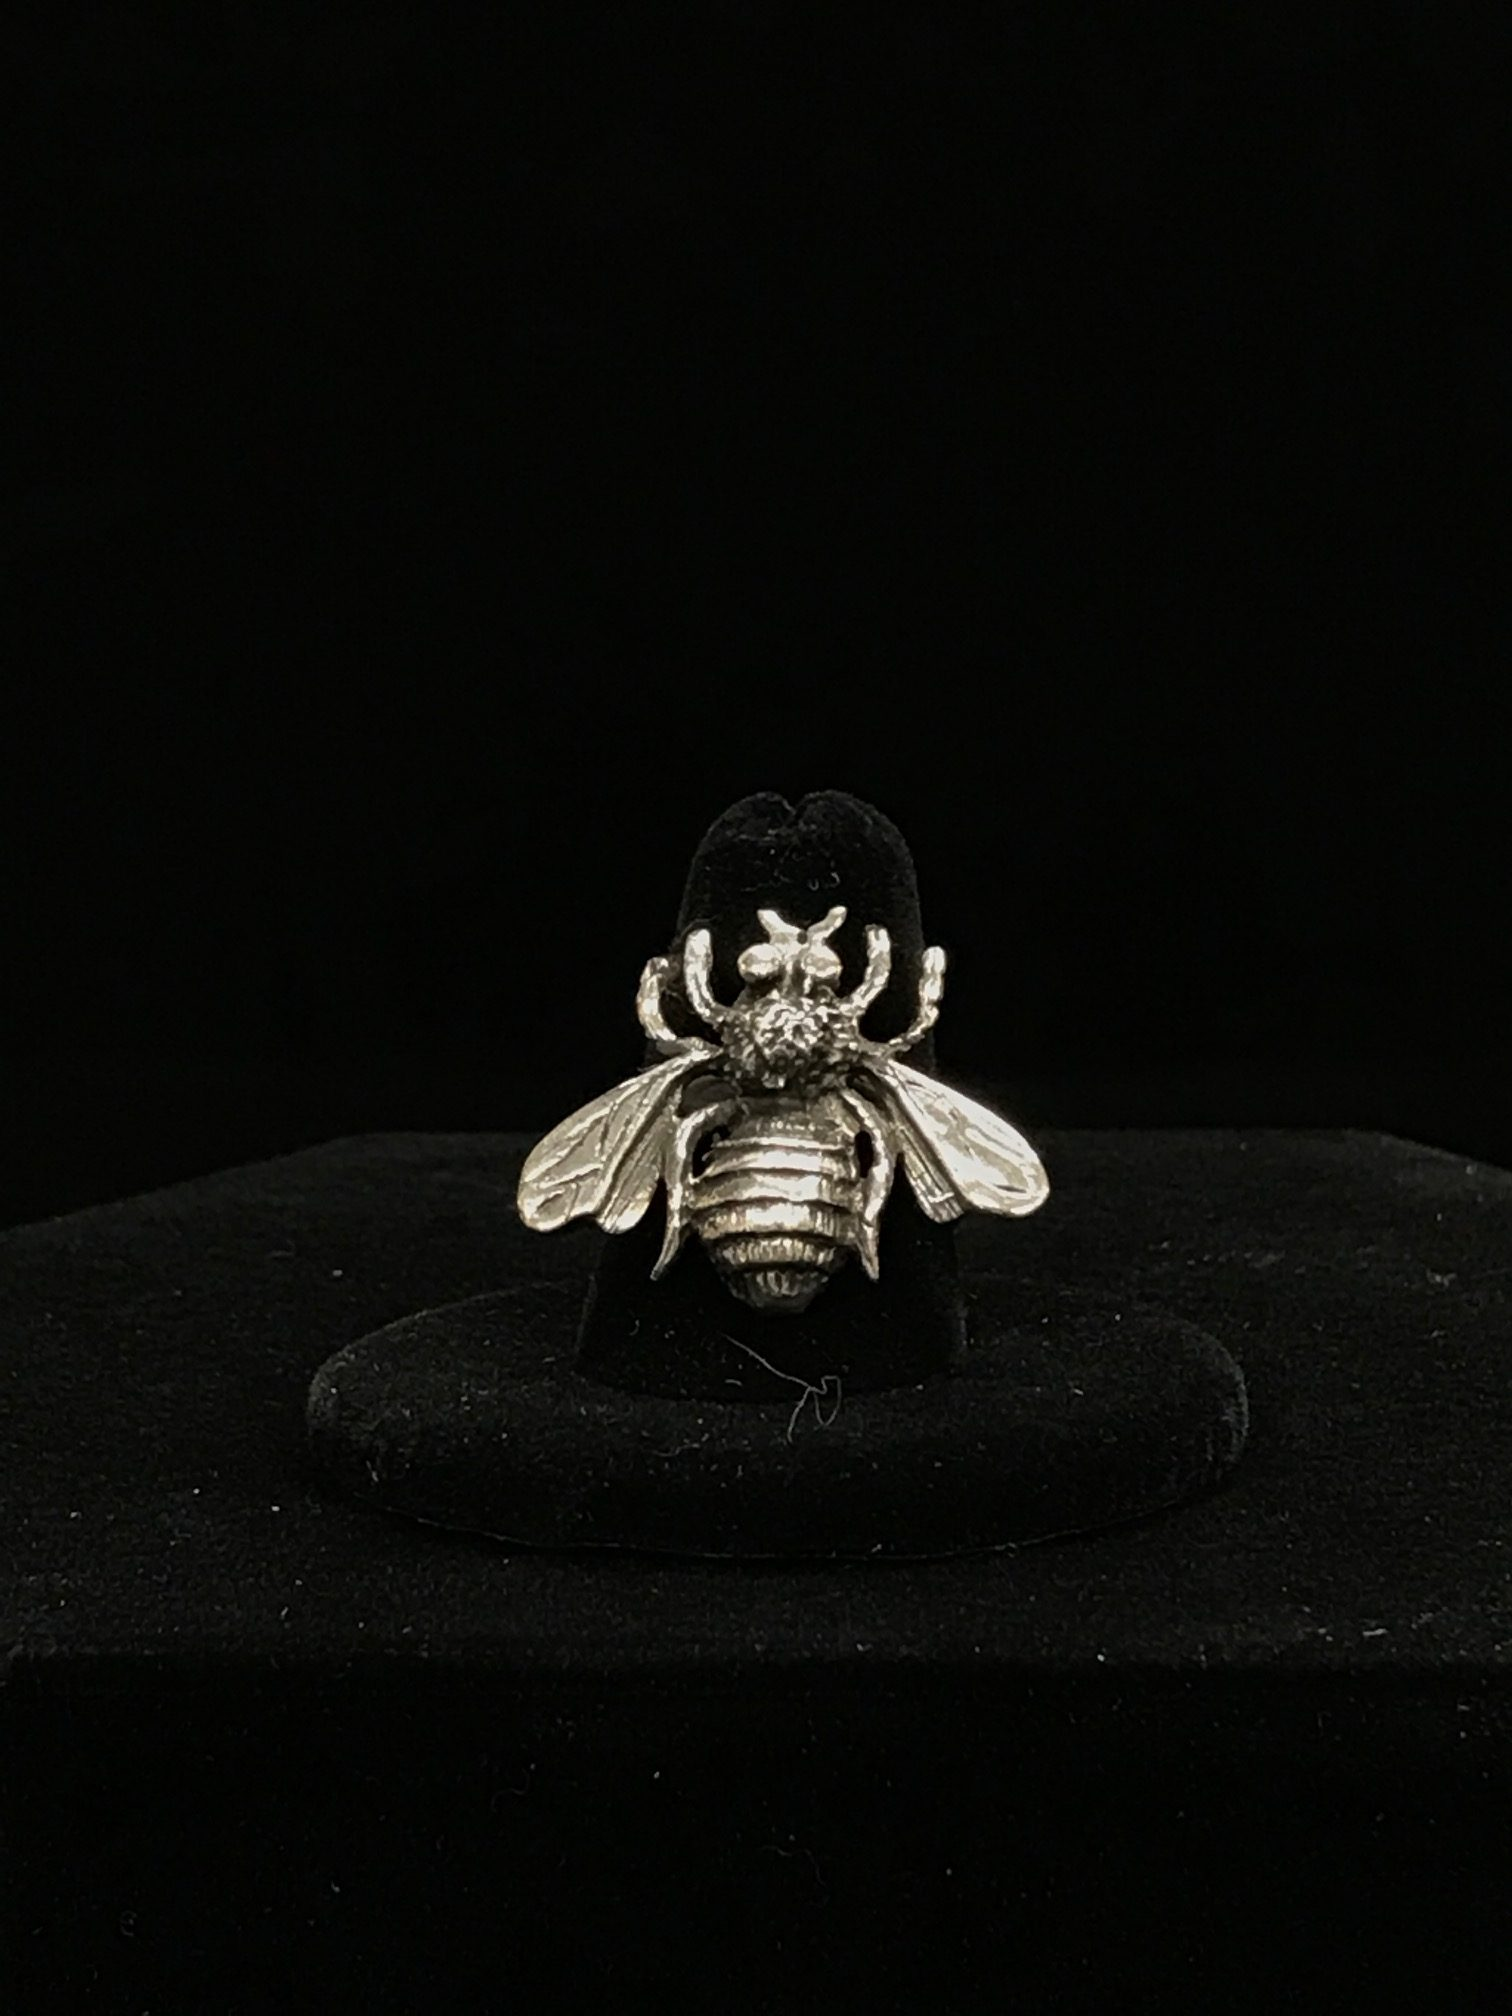 Etched Sterling Silver Bee Adjustable Ring Manchester Bee Ring